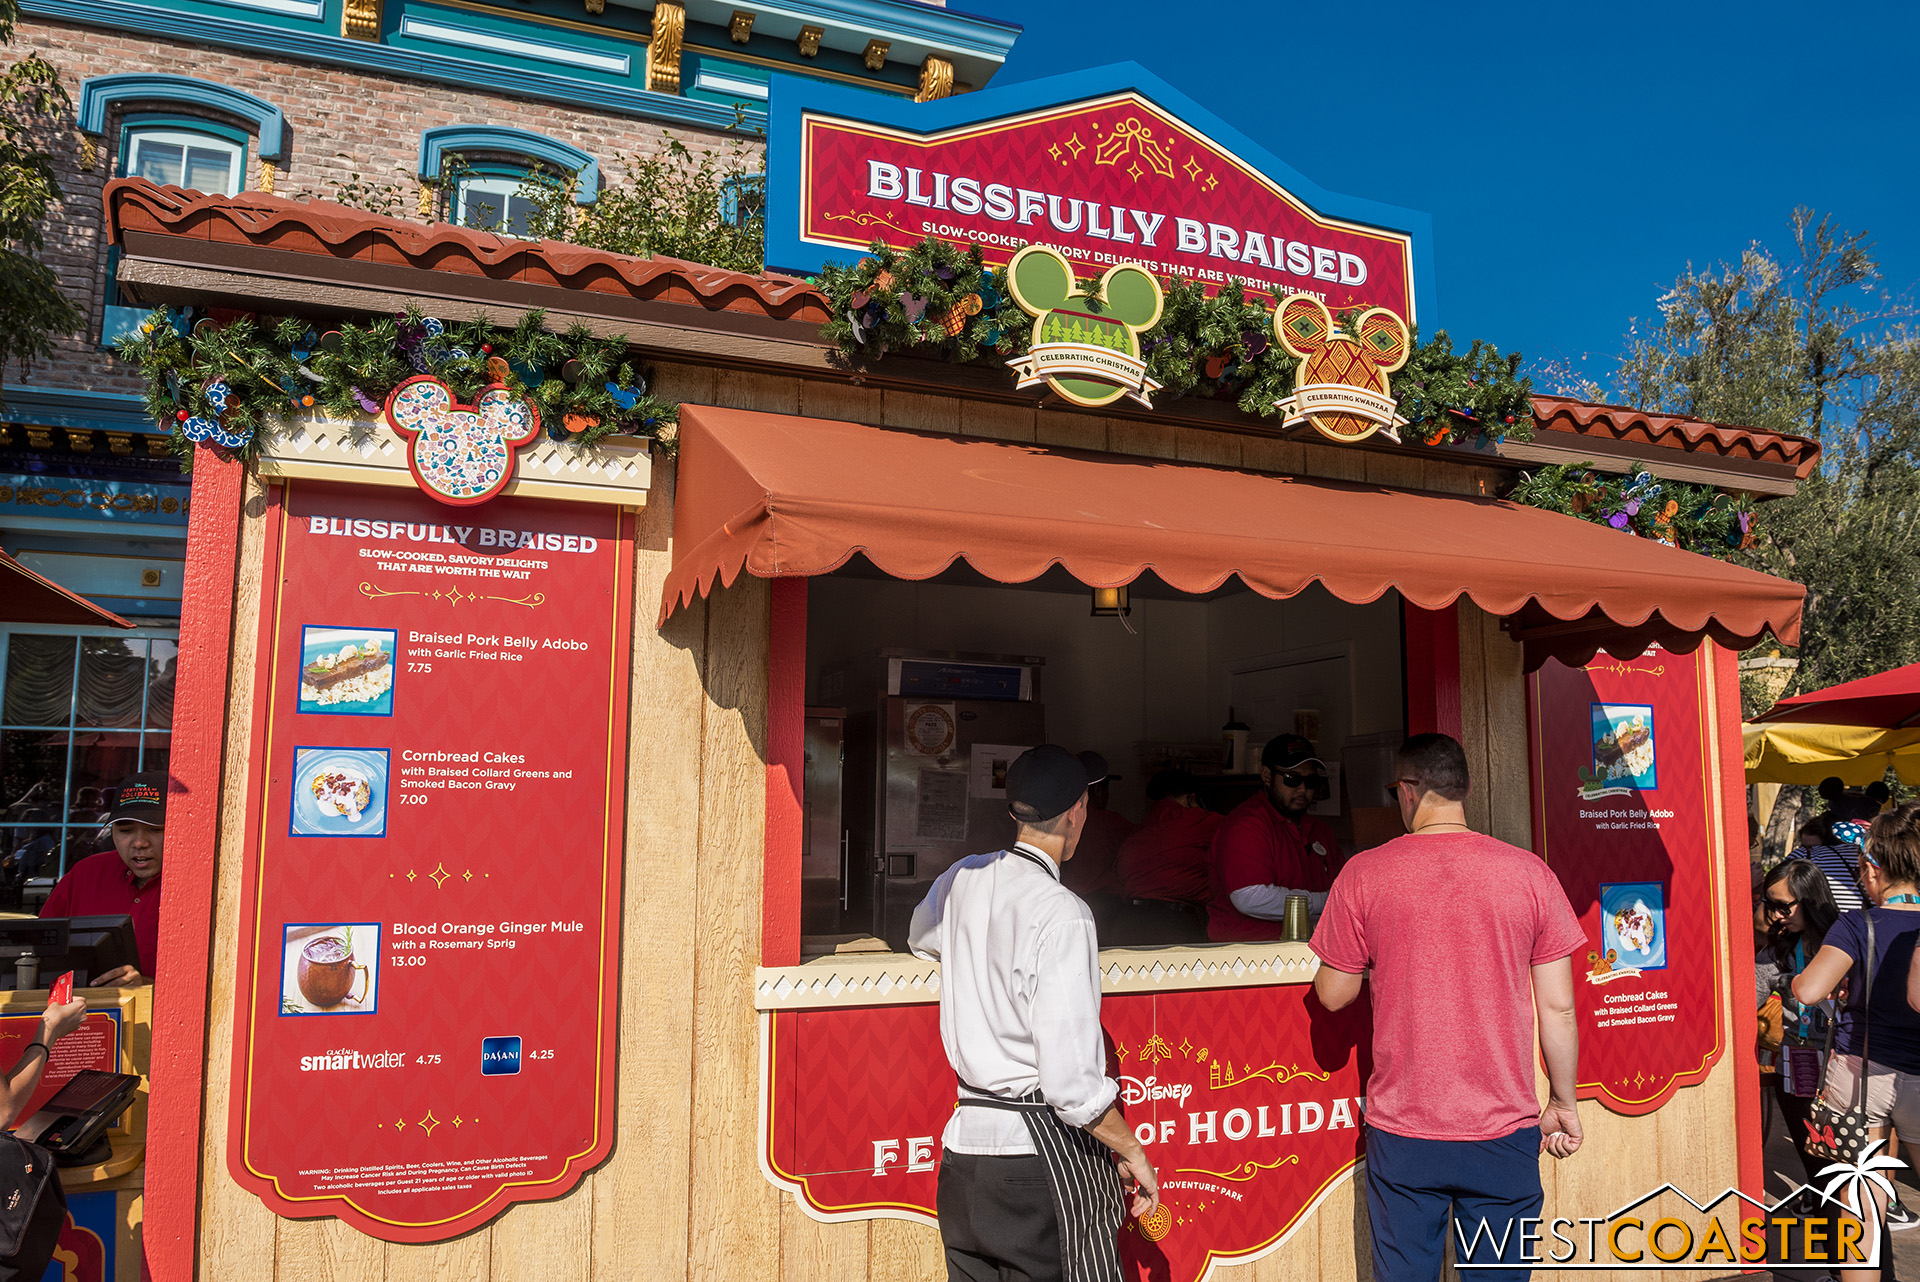 And of course, there are a lot of little food booths as part of the Festival of Holidays culinary attractions.